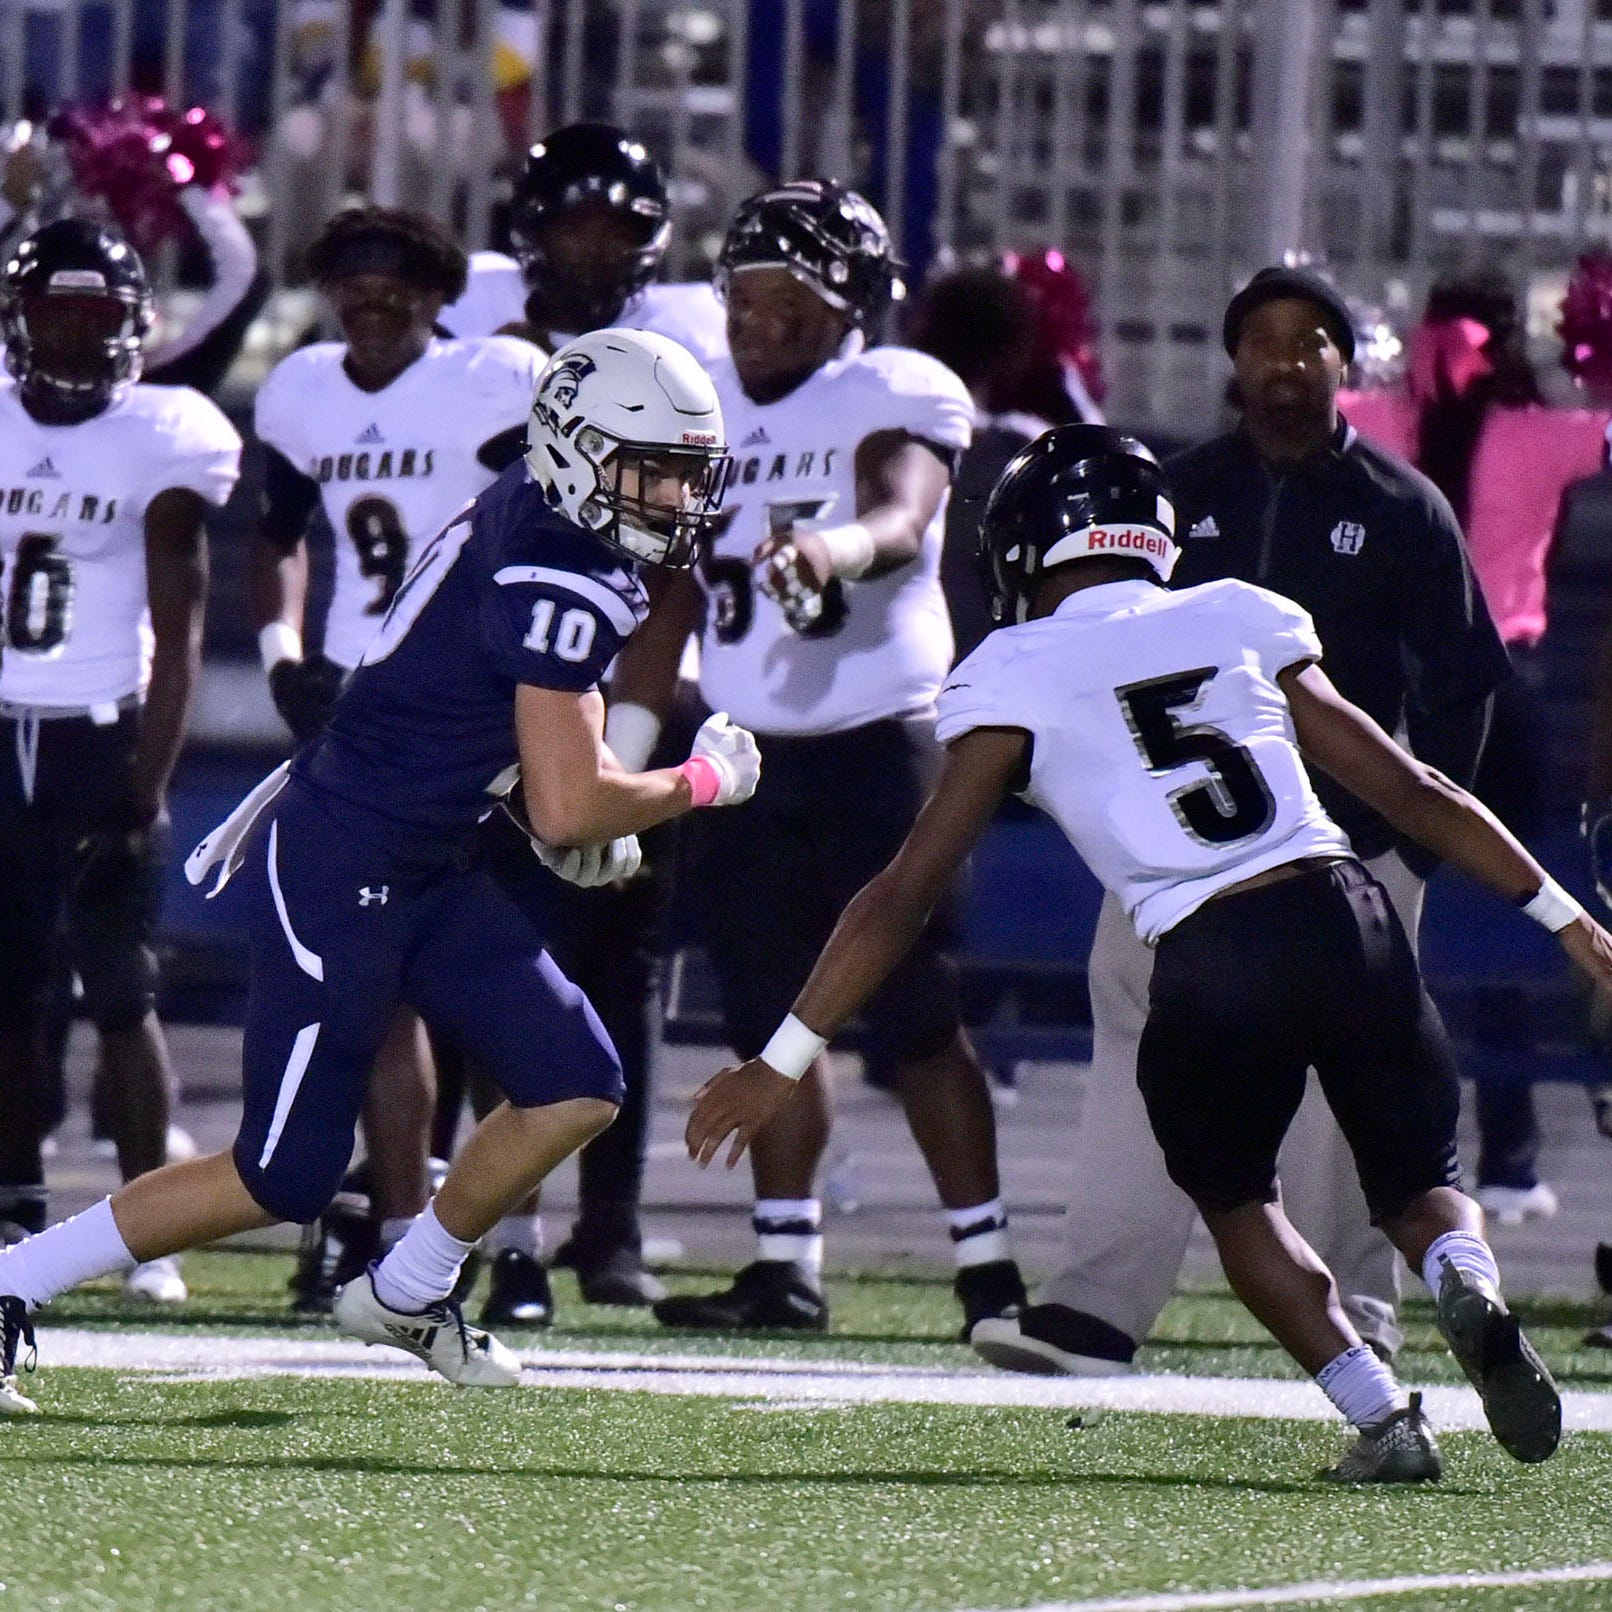 Quick hits: Chambersburg falls to Harrisburg in defensive showcase